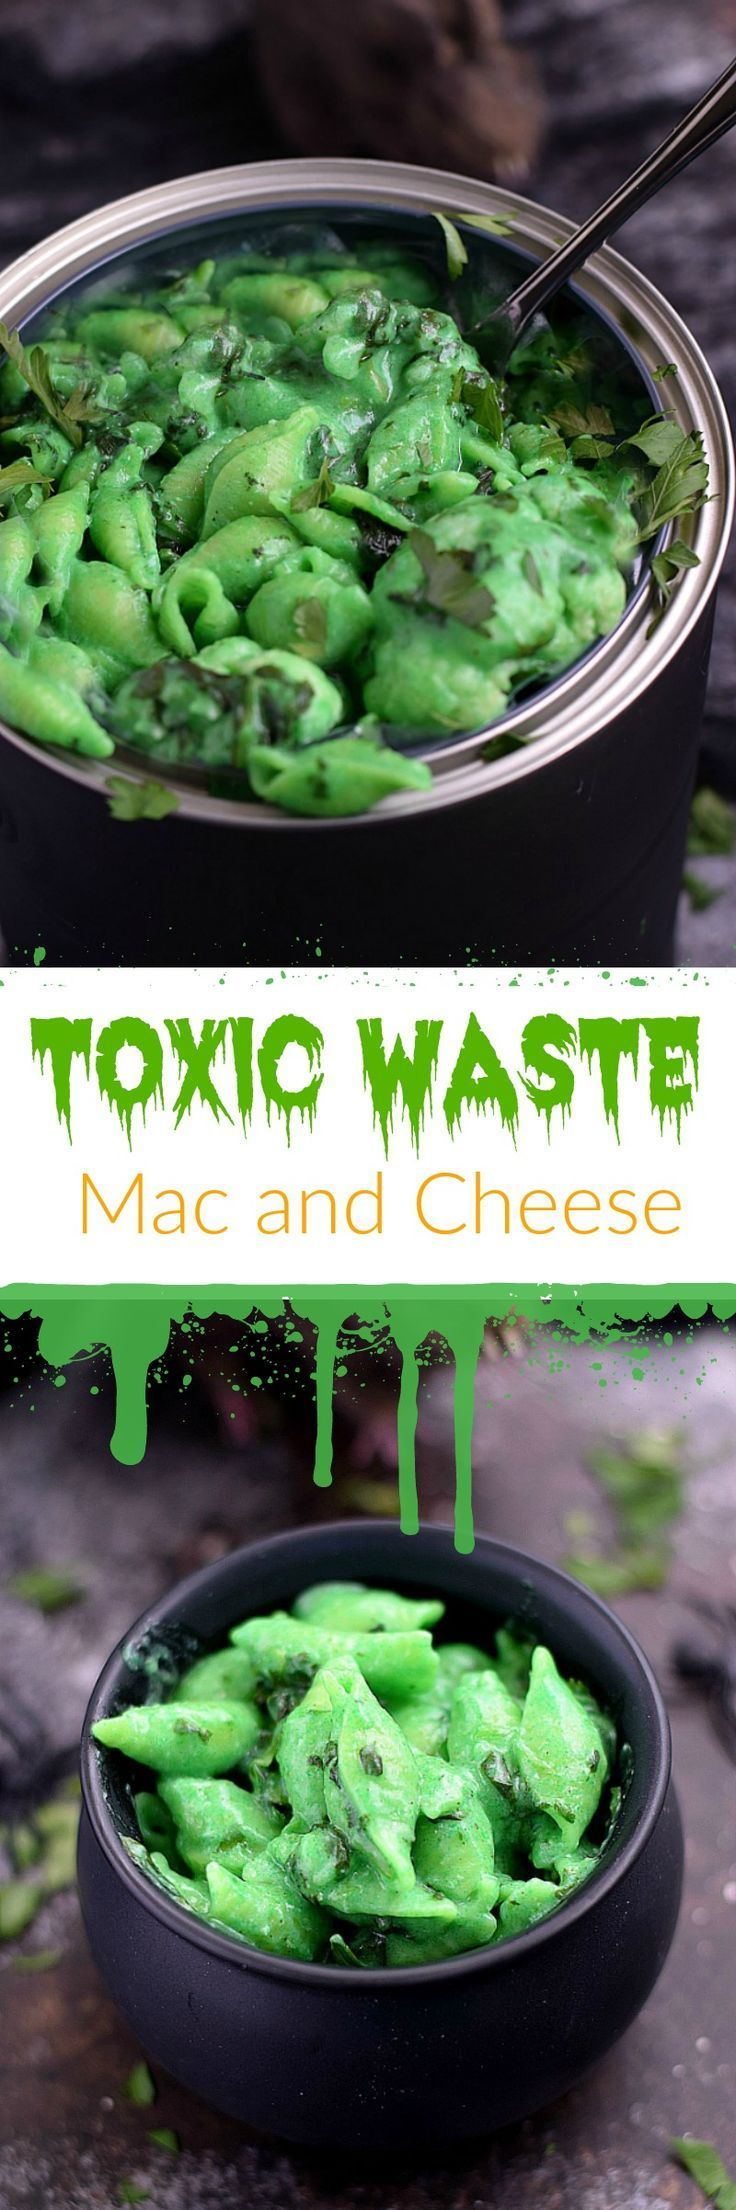 This Toxic Waste Mac and Cheese is disgustingly delicious and actually quite healthy. It's perfect for Halloween!